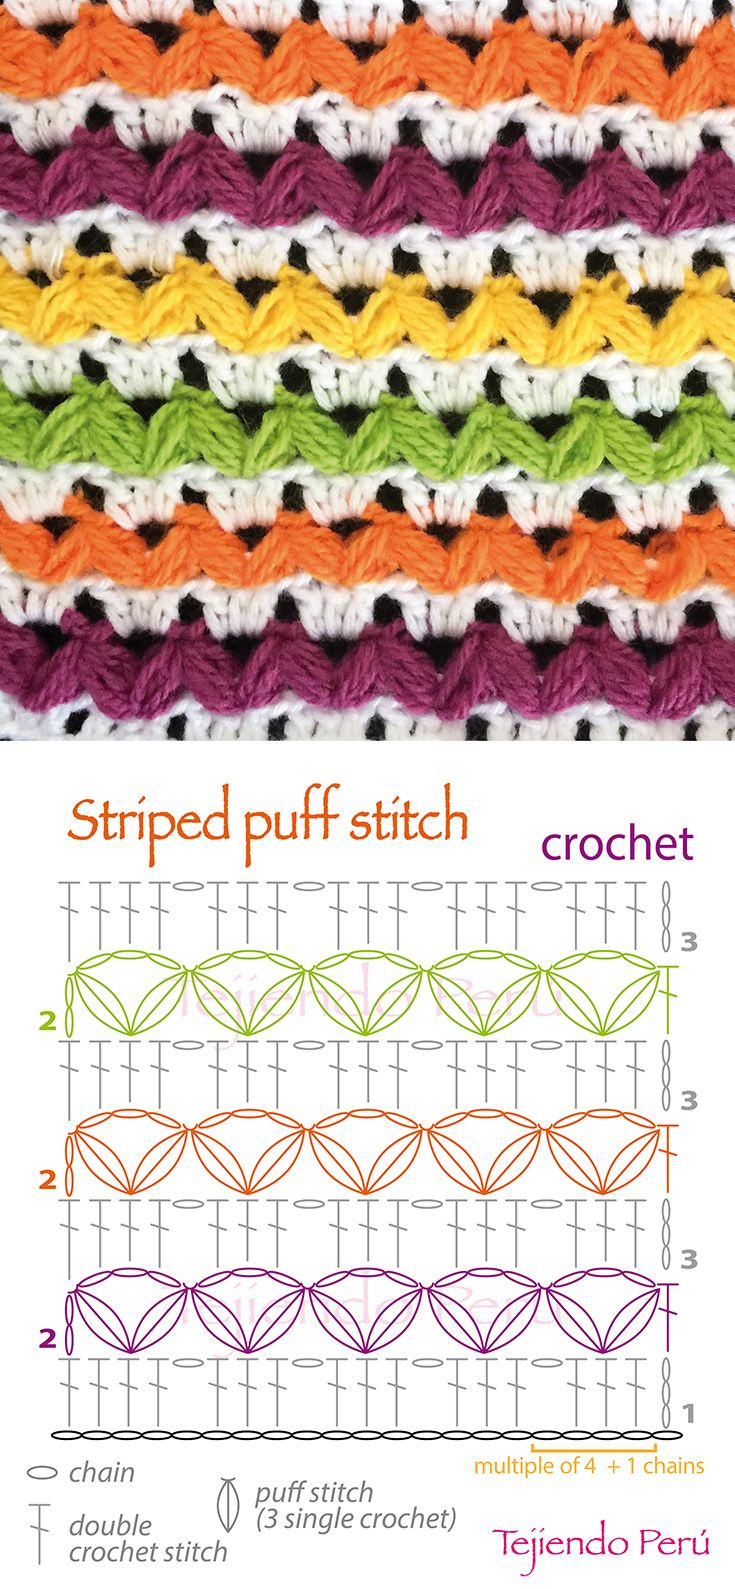 crochet: striped puff stitch diagram!